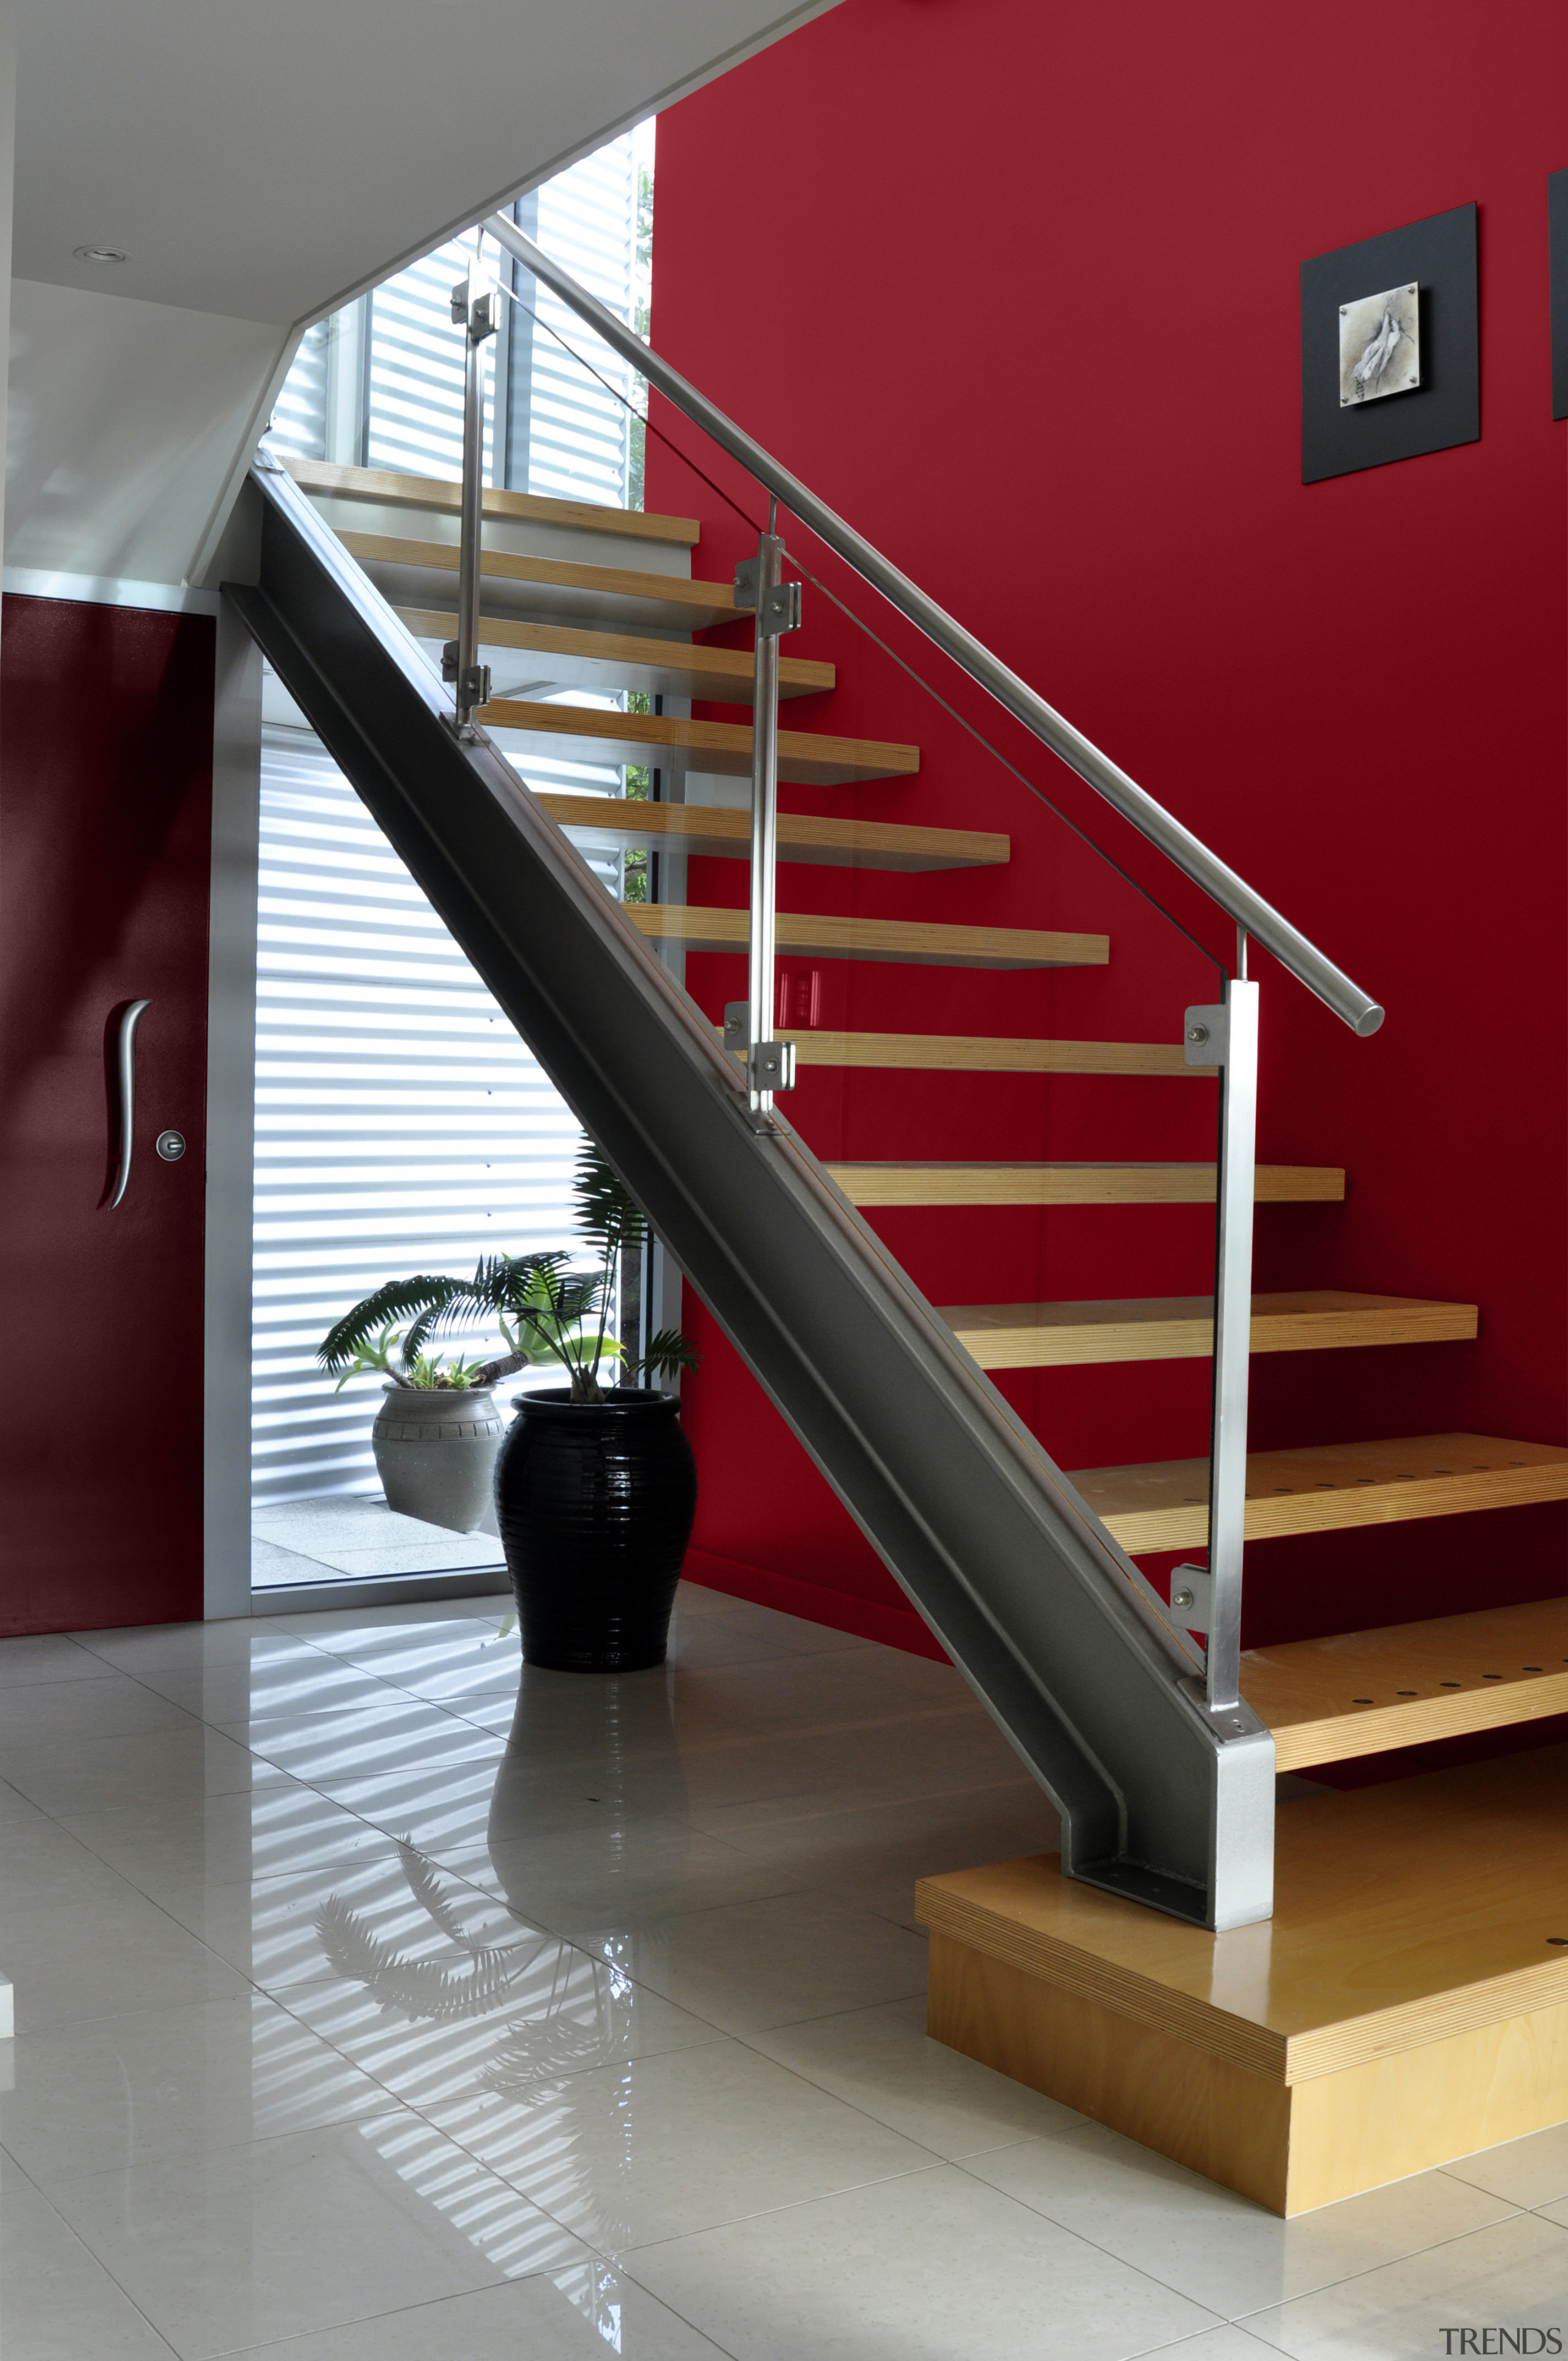 View of different coloured feature walls behind a architecture, baluster, floor, handrail, interior design, product design, stairs, structure, red